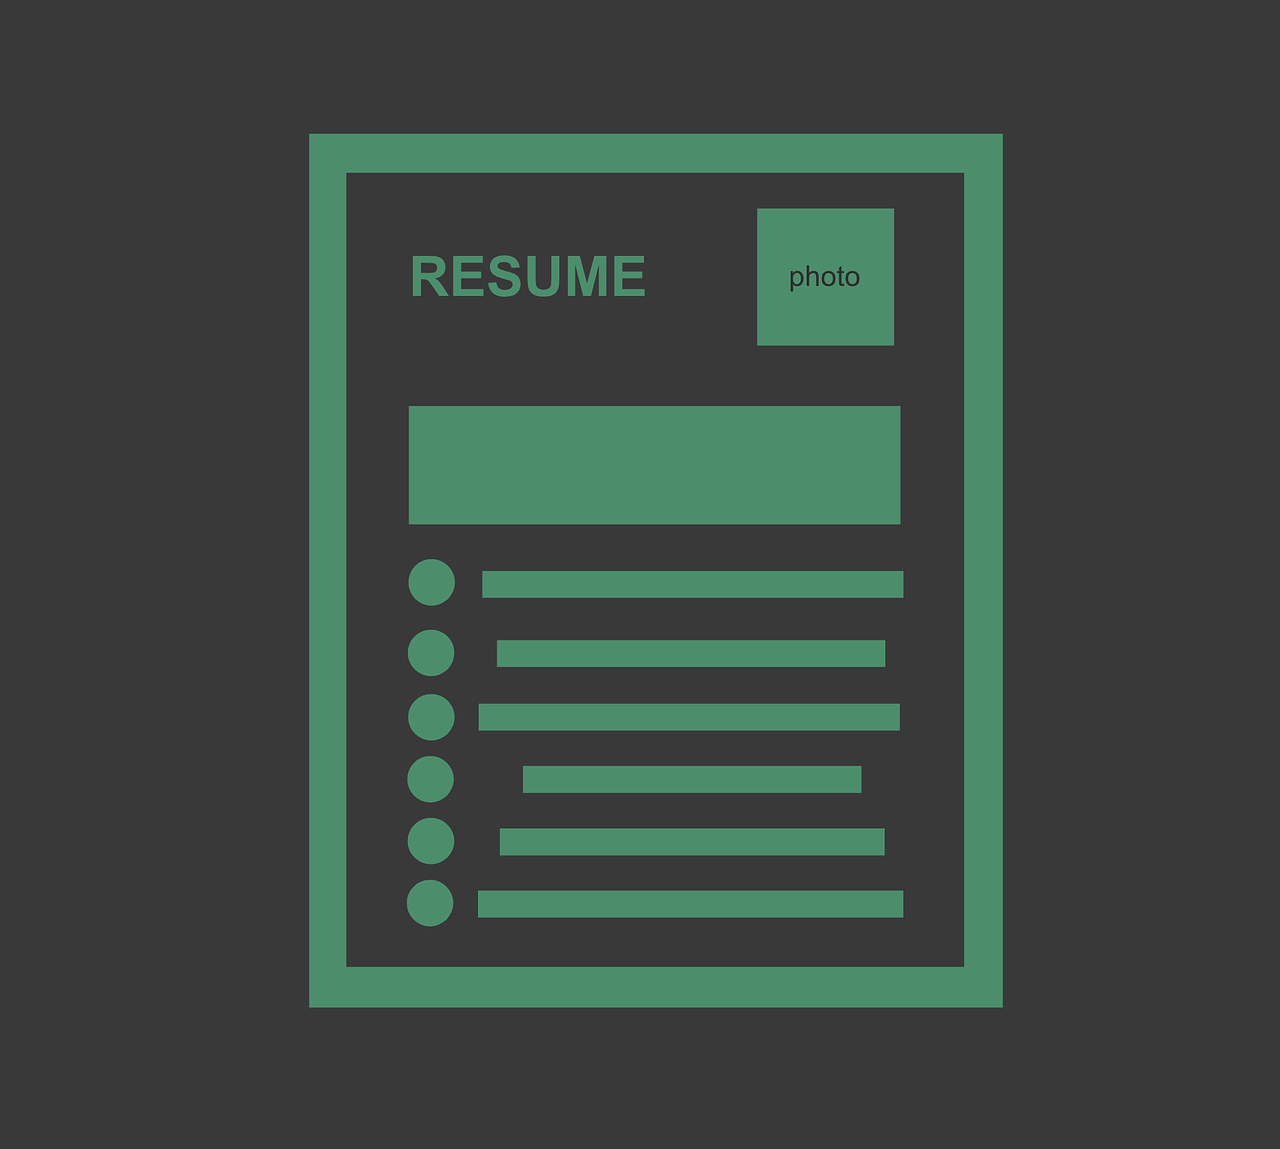 Free Technology For Teachers Six Resume Tools For Teens